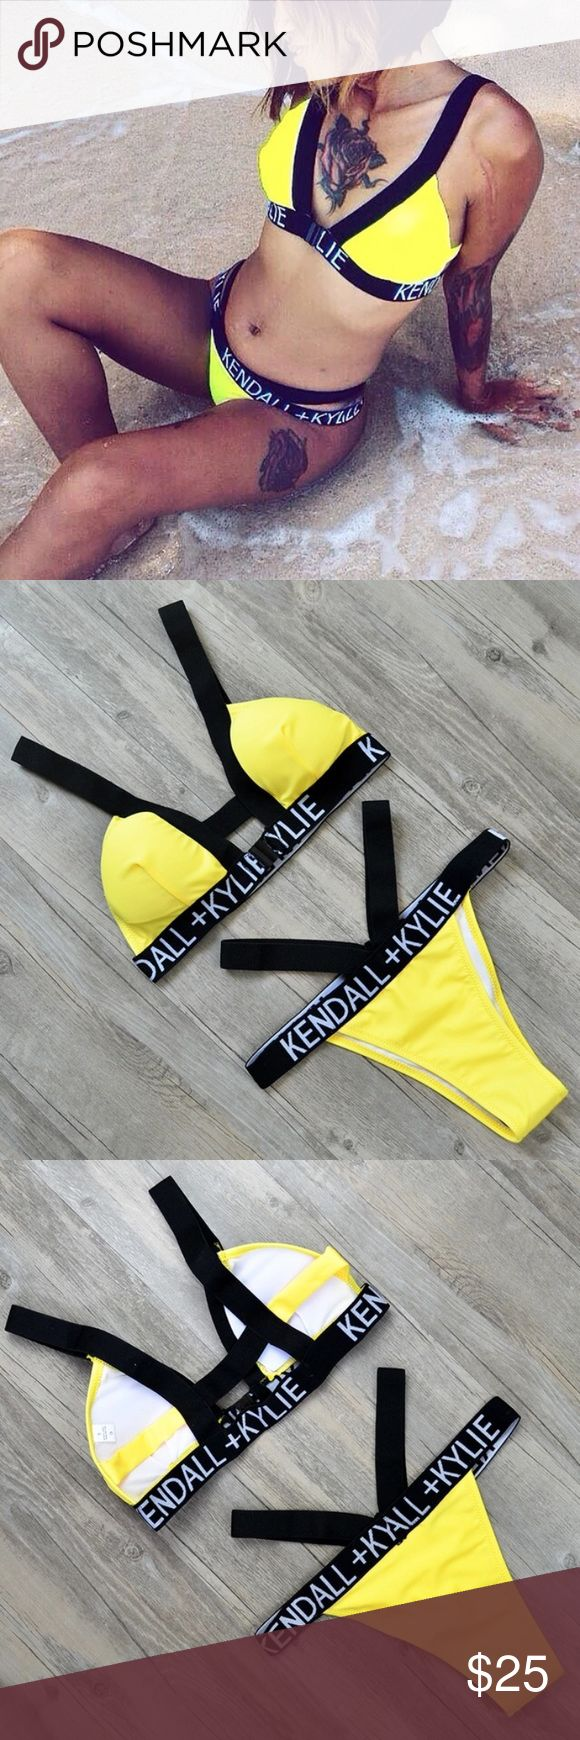 🆕 Kendall Kylie Yellow Bikini, Orange, Hot Pink BRAND NEW  Kendall + Kylie Yellow Strappy Bikini  Padded bra!!   Sizes SMALL, MEDIUM and LARGE available. Limited quantities 👙FIRST COME FIRST SERVE   High quality, boutique branded!   Hot Pink and Orange also in Stock S-L   * this is from my online store Trumpet Jewels follow me on IG @trumpetjewels1 Urban Outfitters Swim